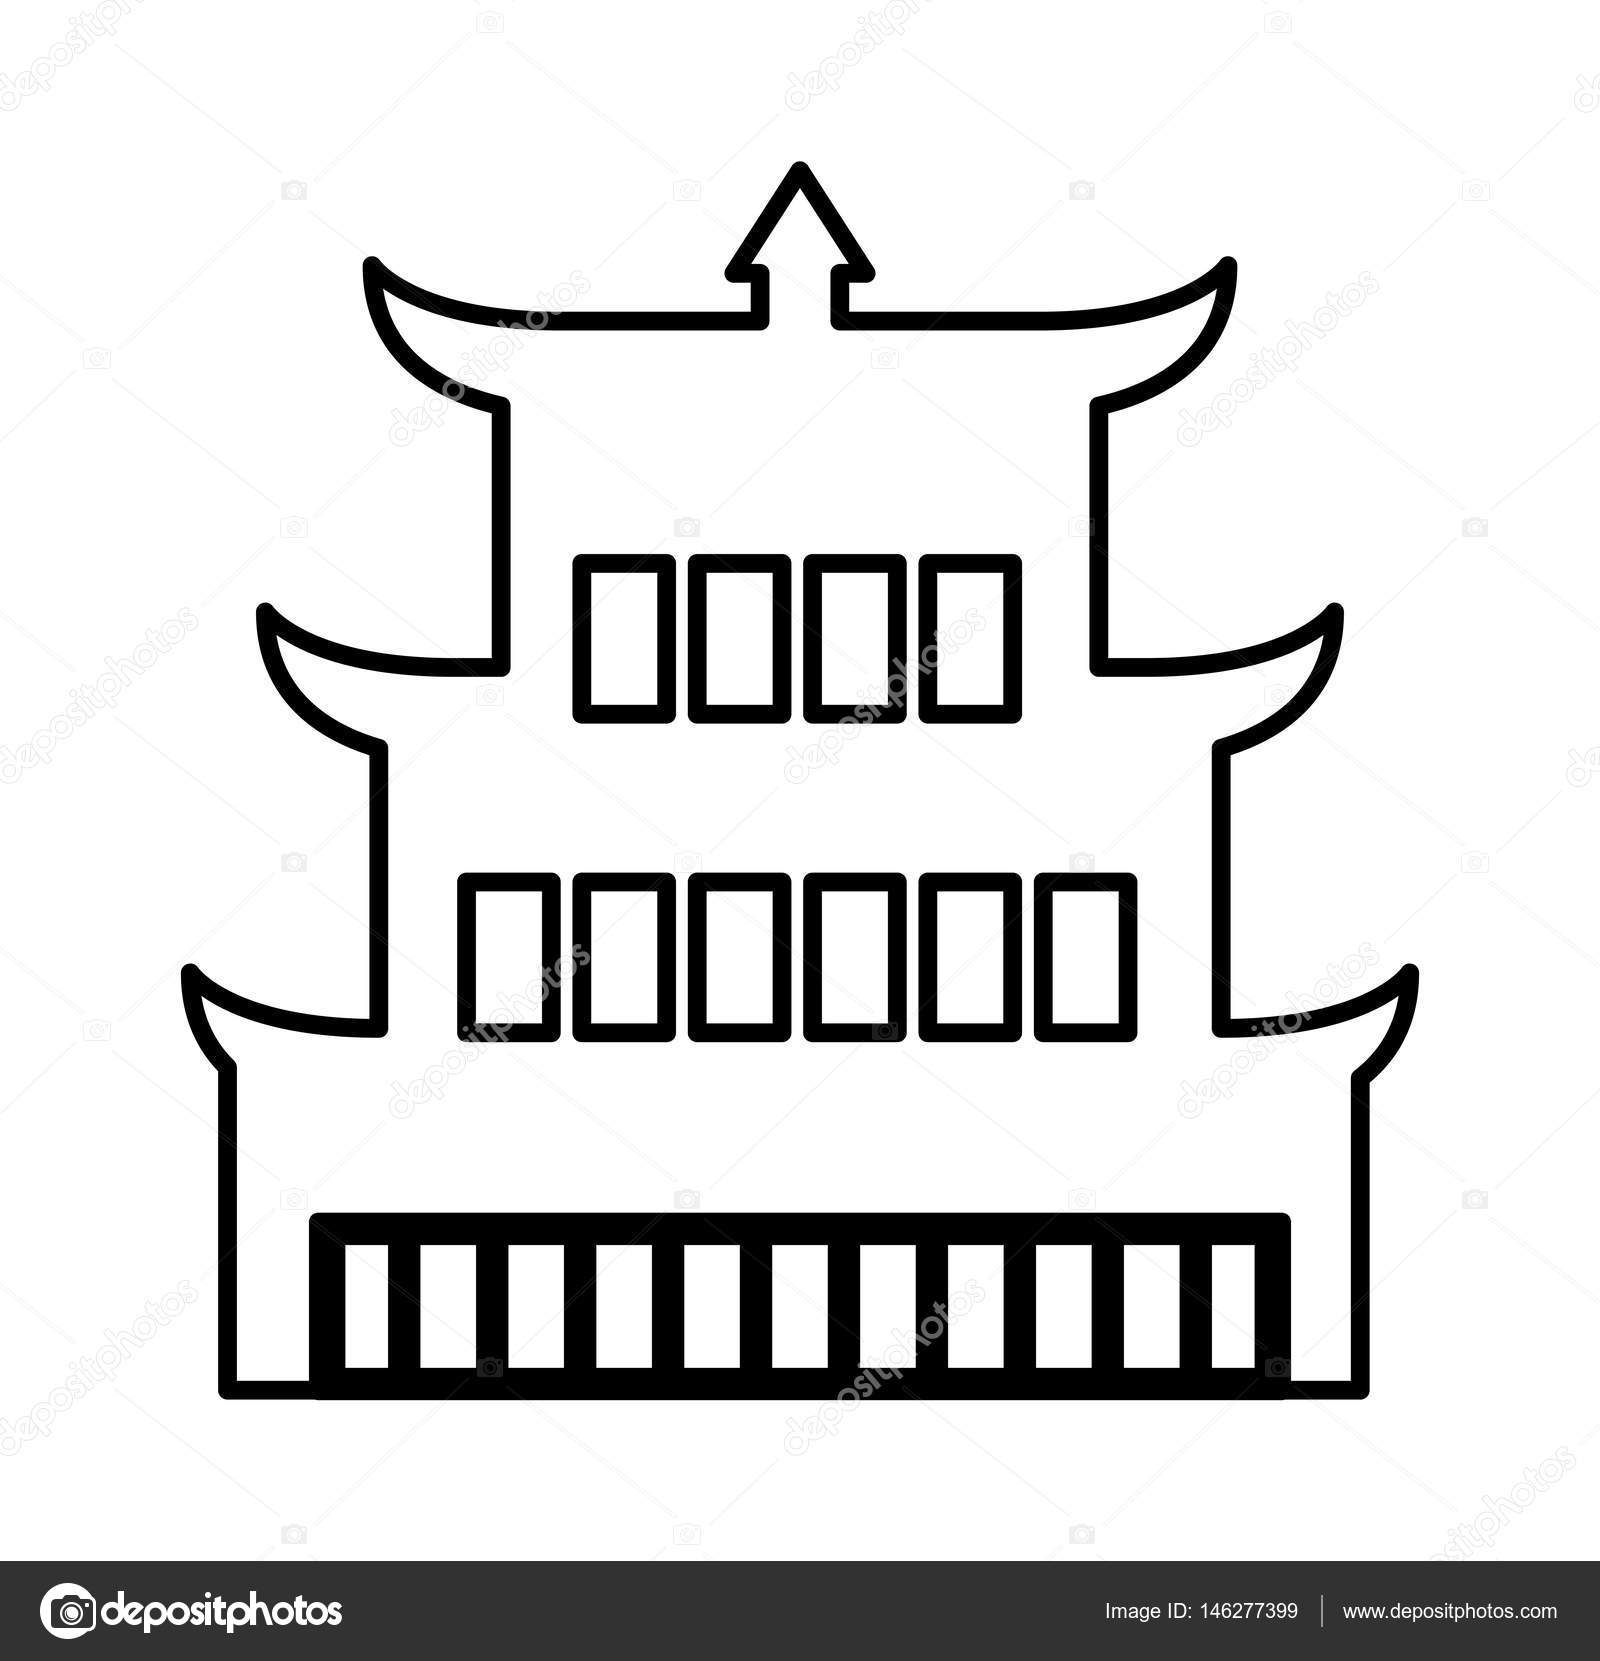 asian building castle icon — stock vector © yupiramos #146277399